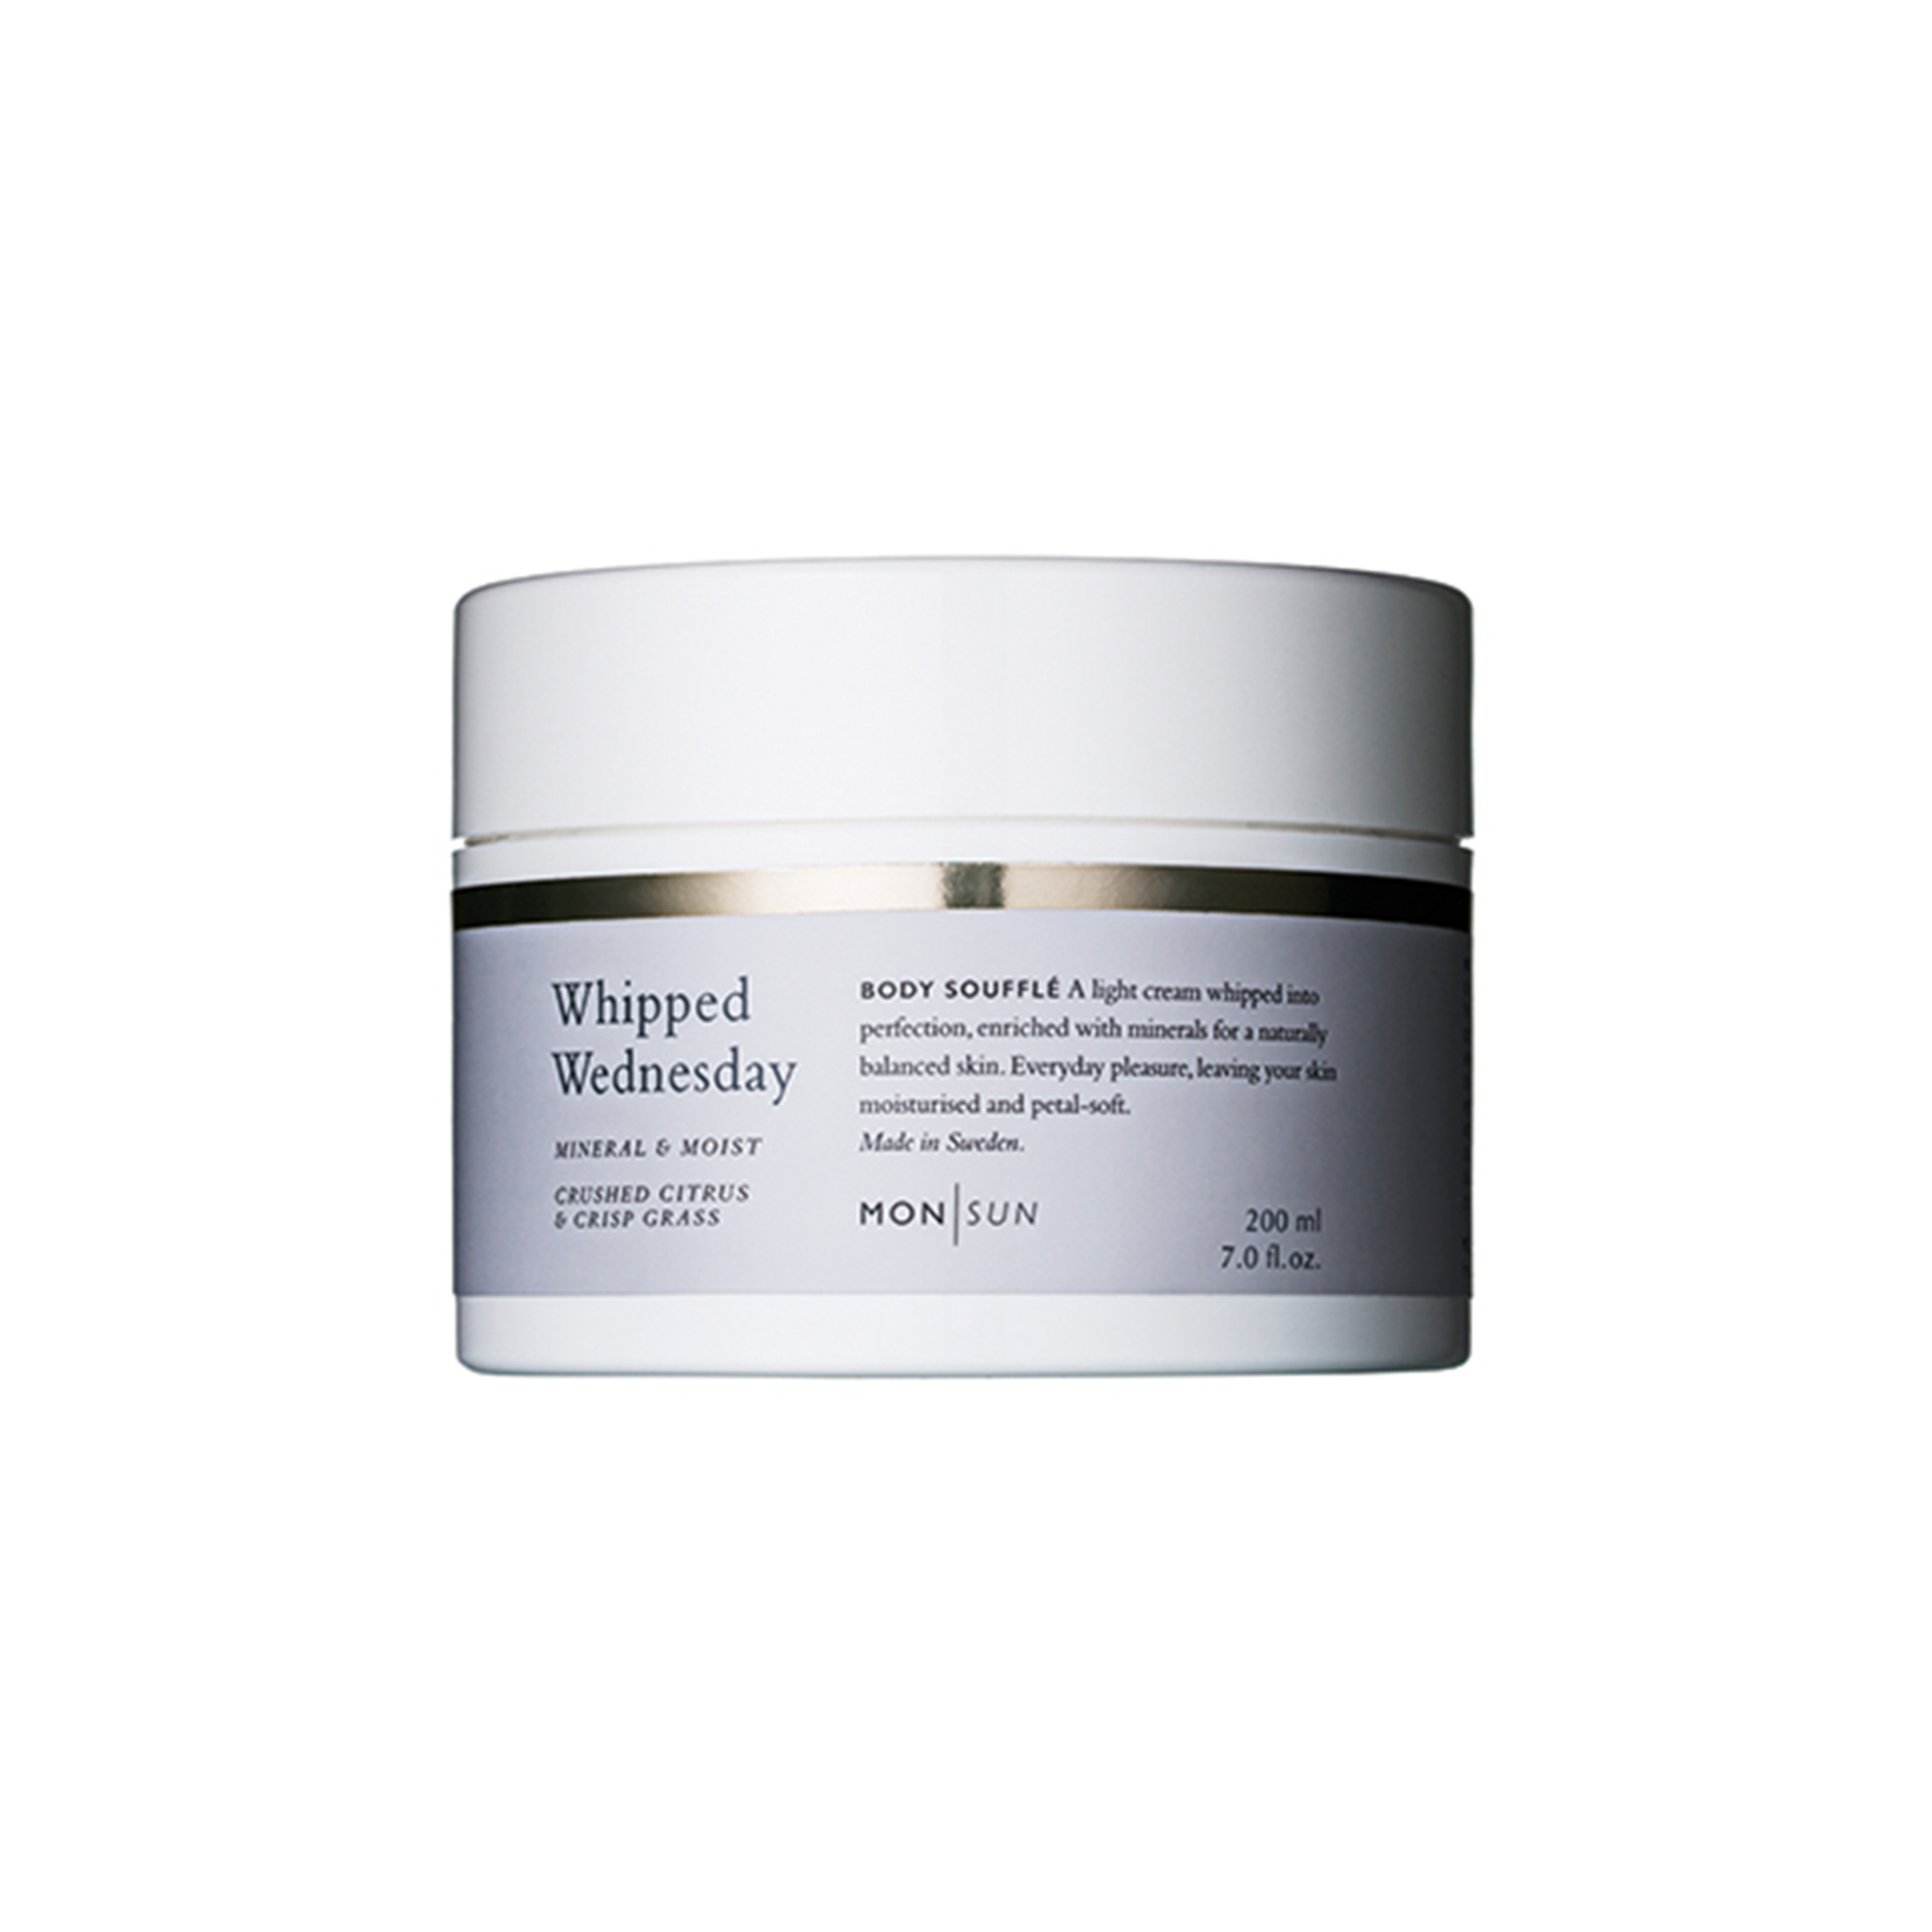 Whipped Wednesday Mineral & Moist Body Soufflé 200 ml